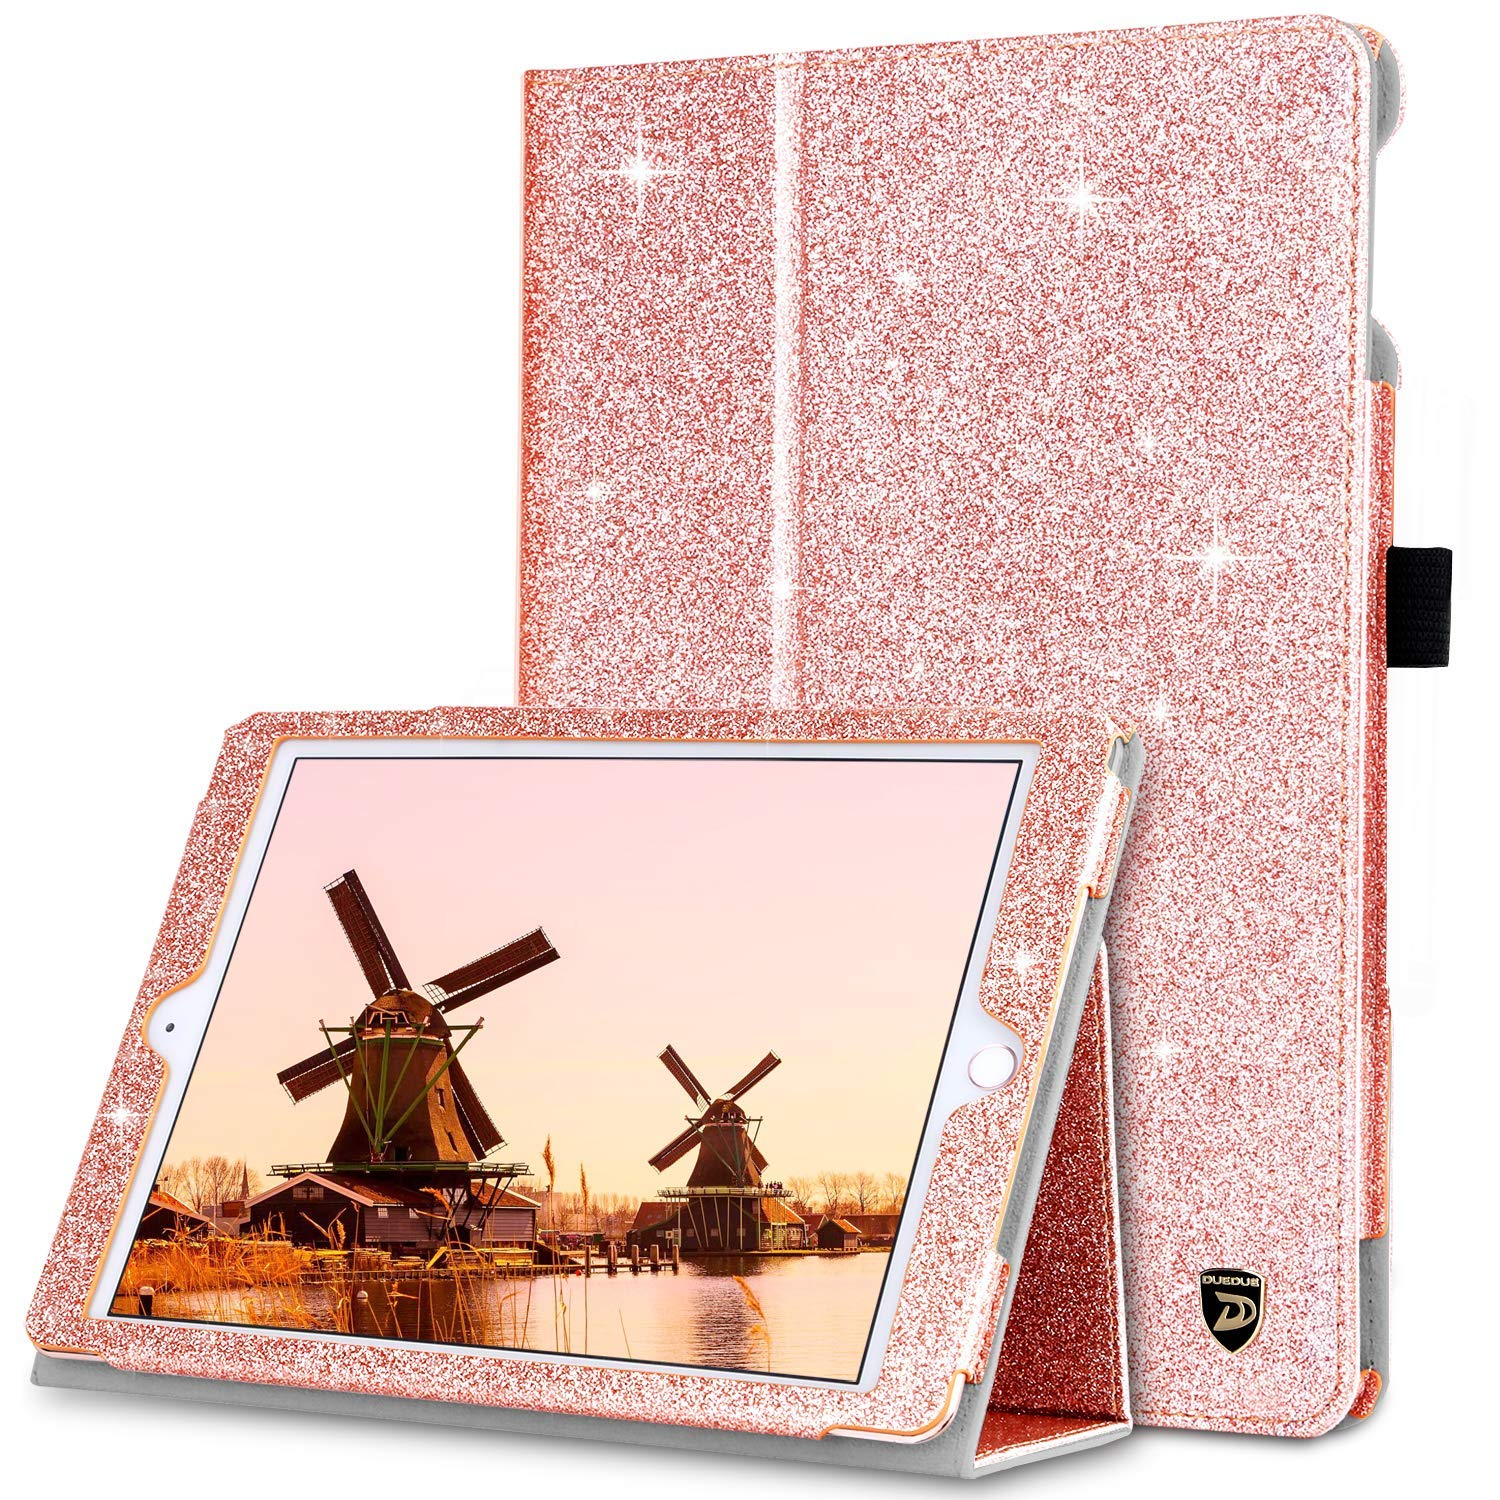 DUEDUE iPad 9.7 2017/2018/iPad Air 2/iPad Air Case, Sparkly Glitter Bling PU Leather Shockproof Folio Stand Auto Sleep/Wake Full Protective Cover for iPad 6th/5th Generation/iPad Air, Rose Gold